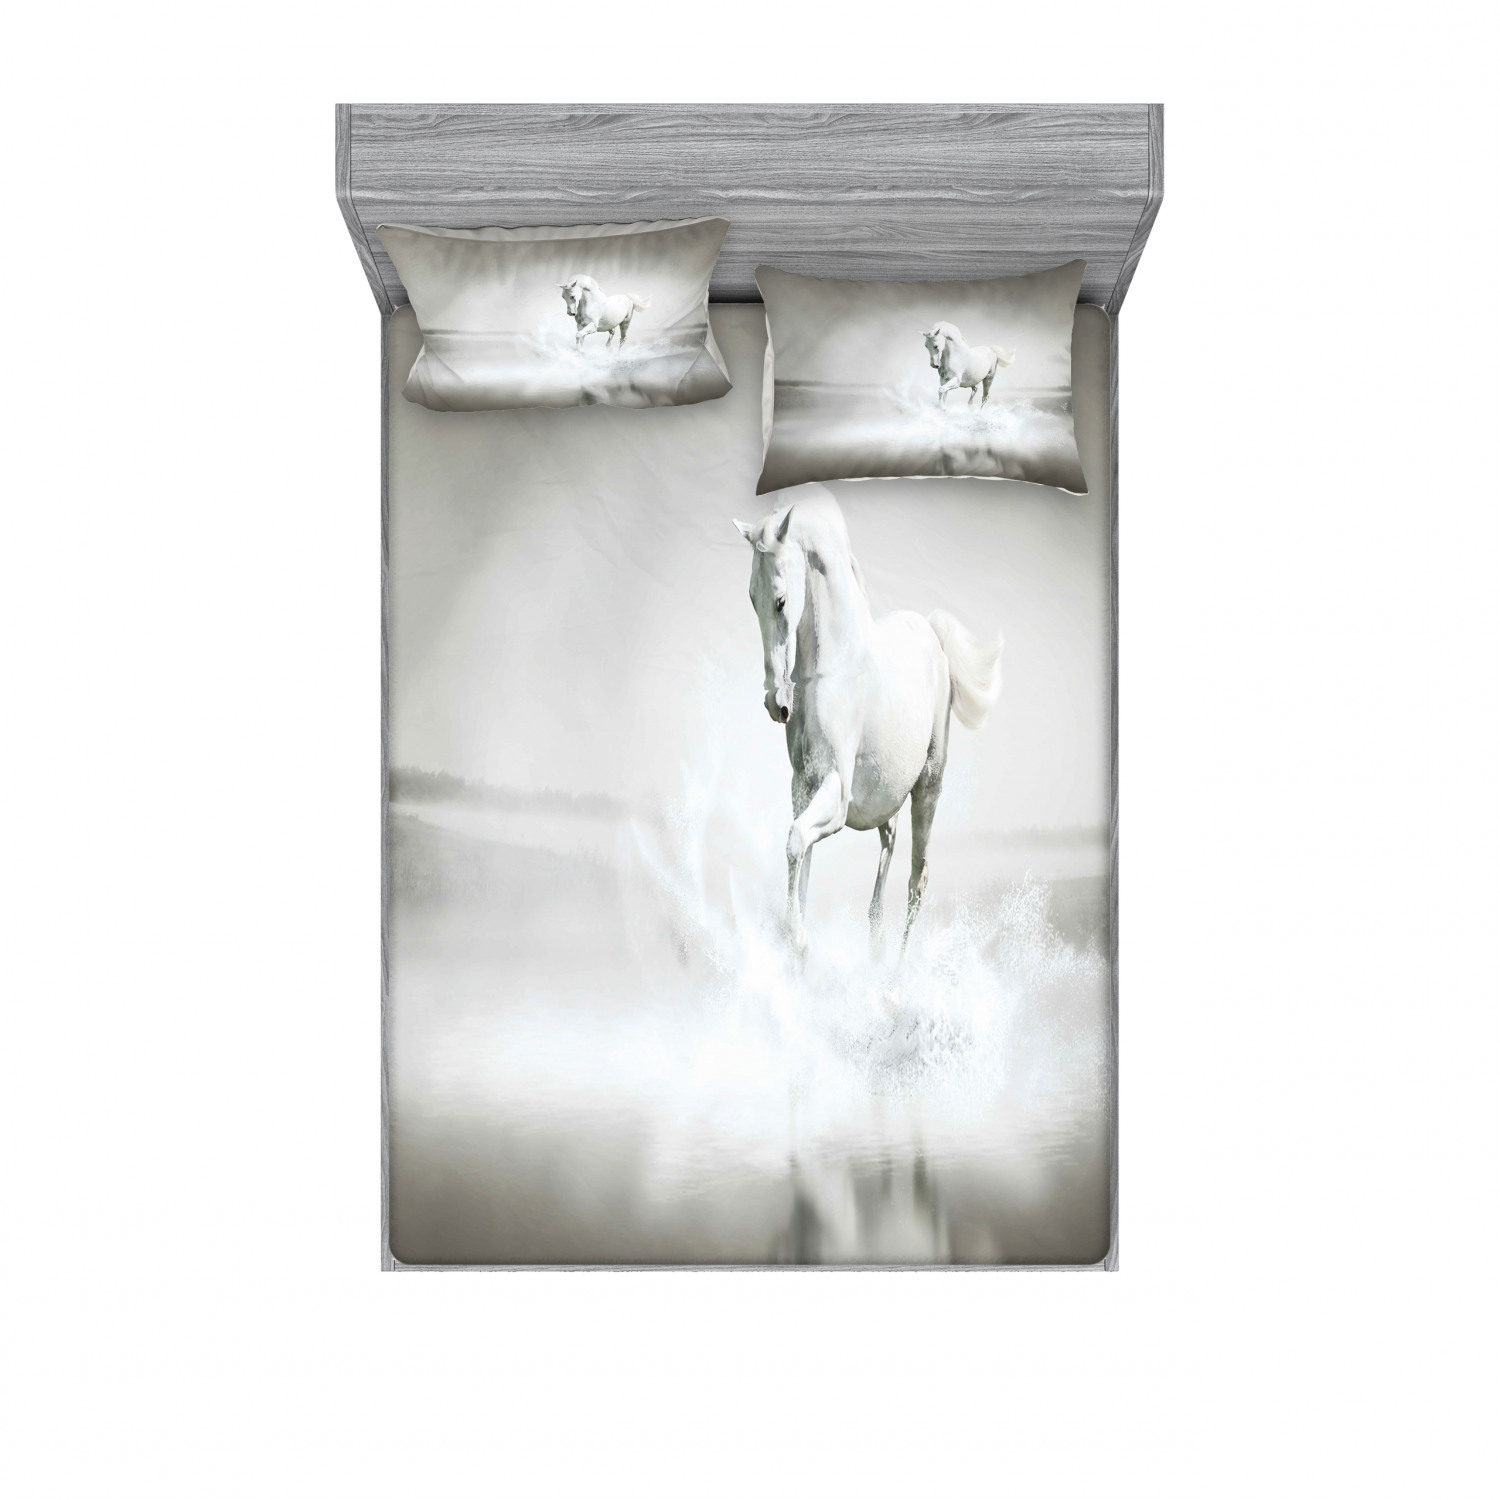 Horses Bedding Set With Sheet Covers Wild Horse Running Through Water Dramatic For The Motivation Of Life Art Printed Bedroom Decor 2 Shams 4 Sizes Black And White By Ambesonne